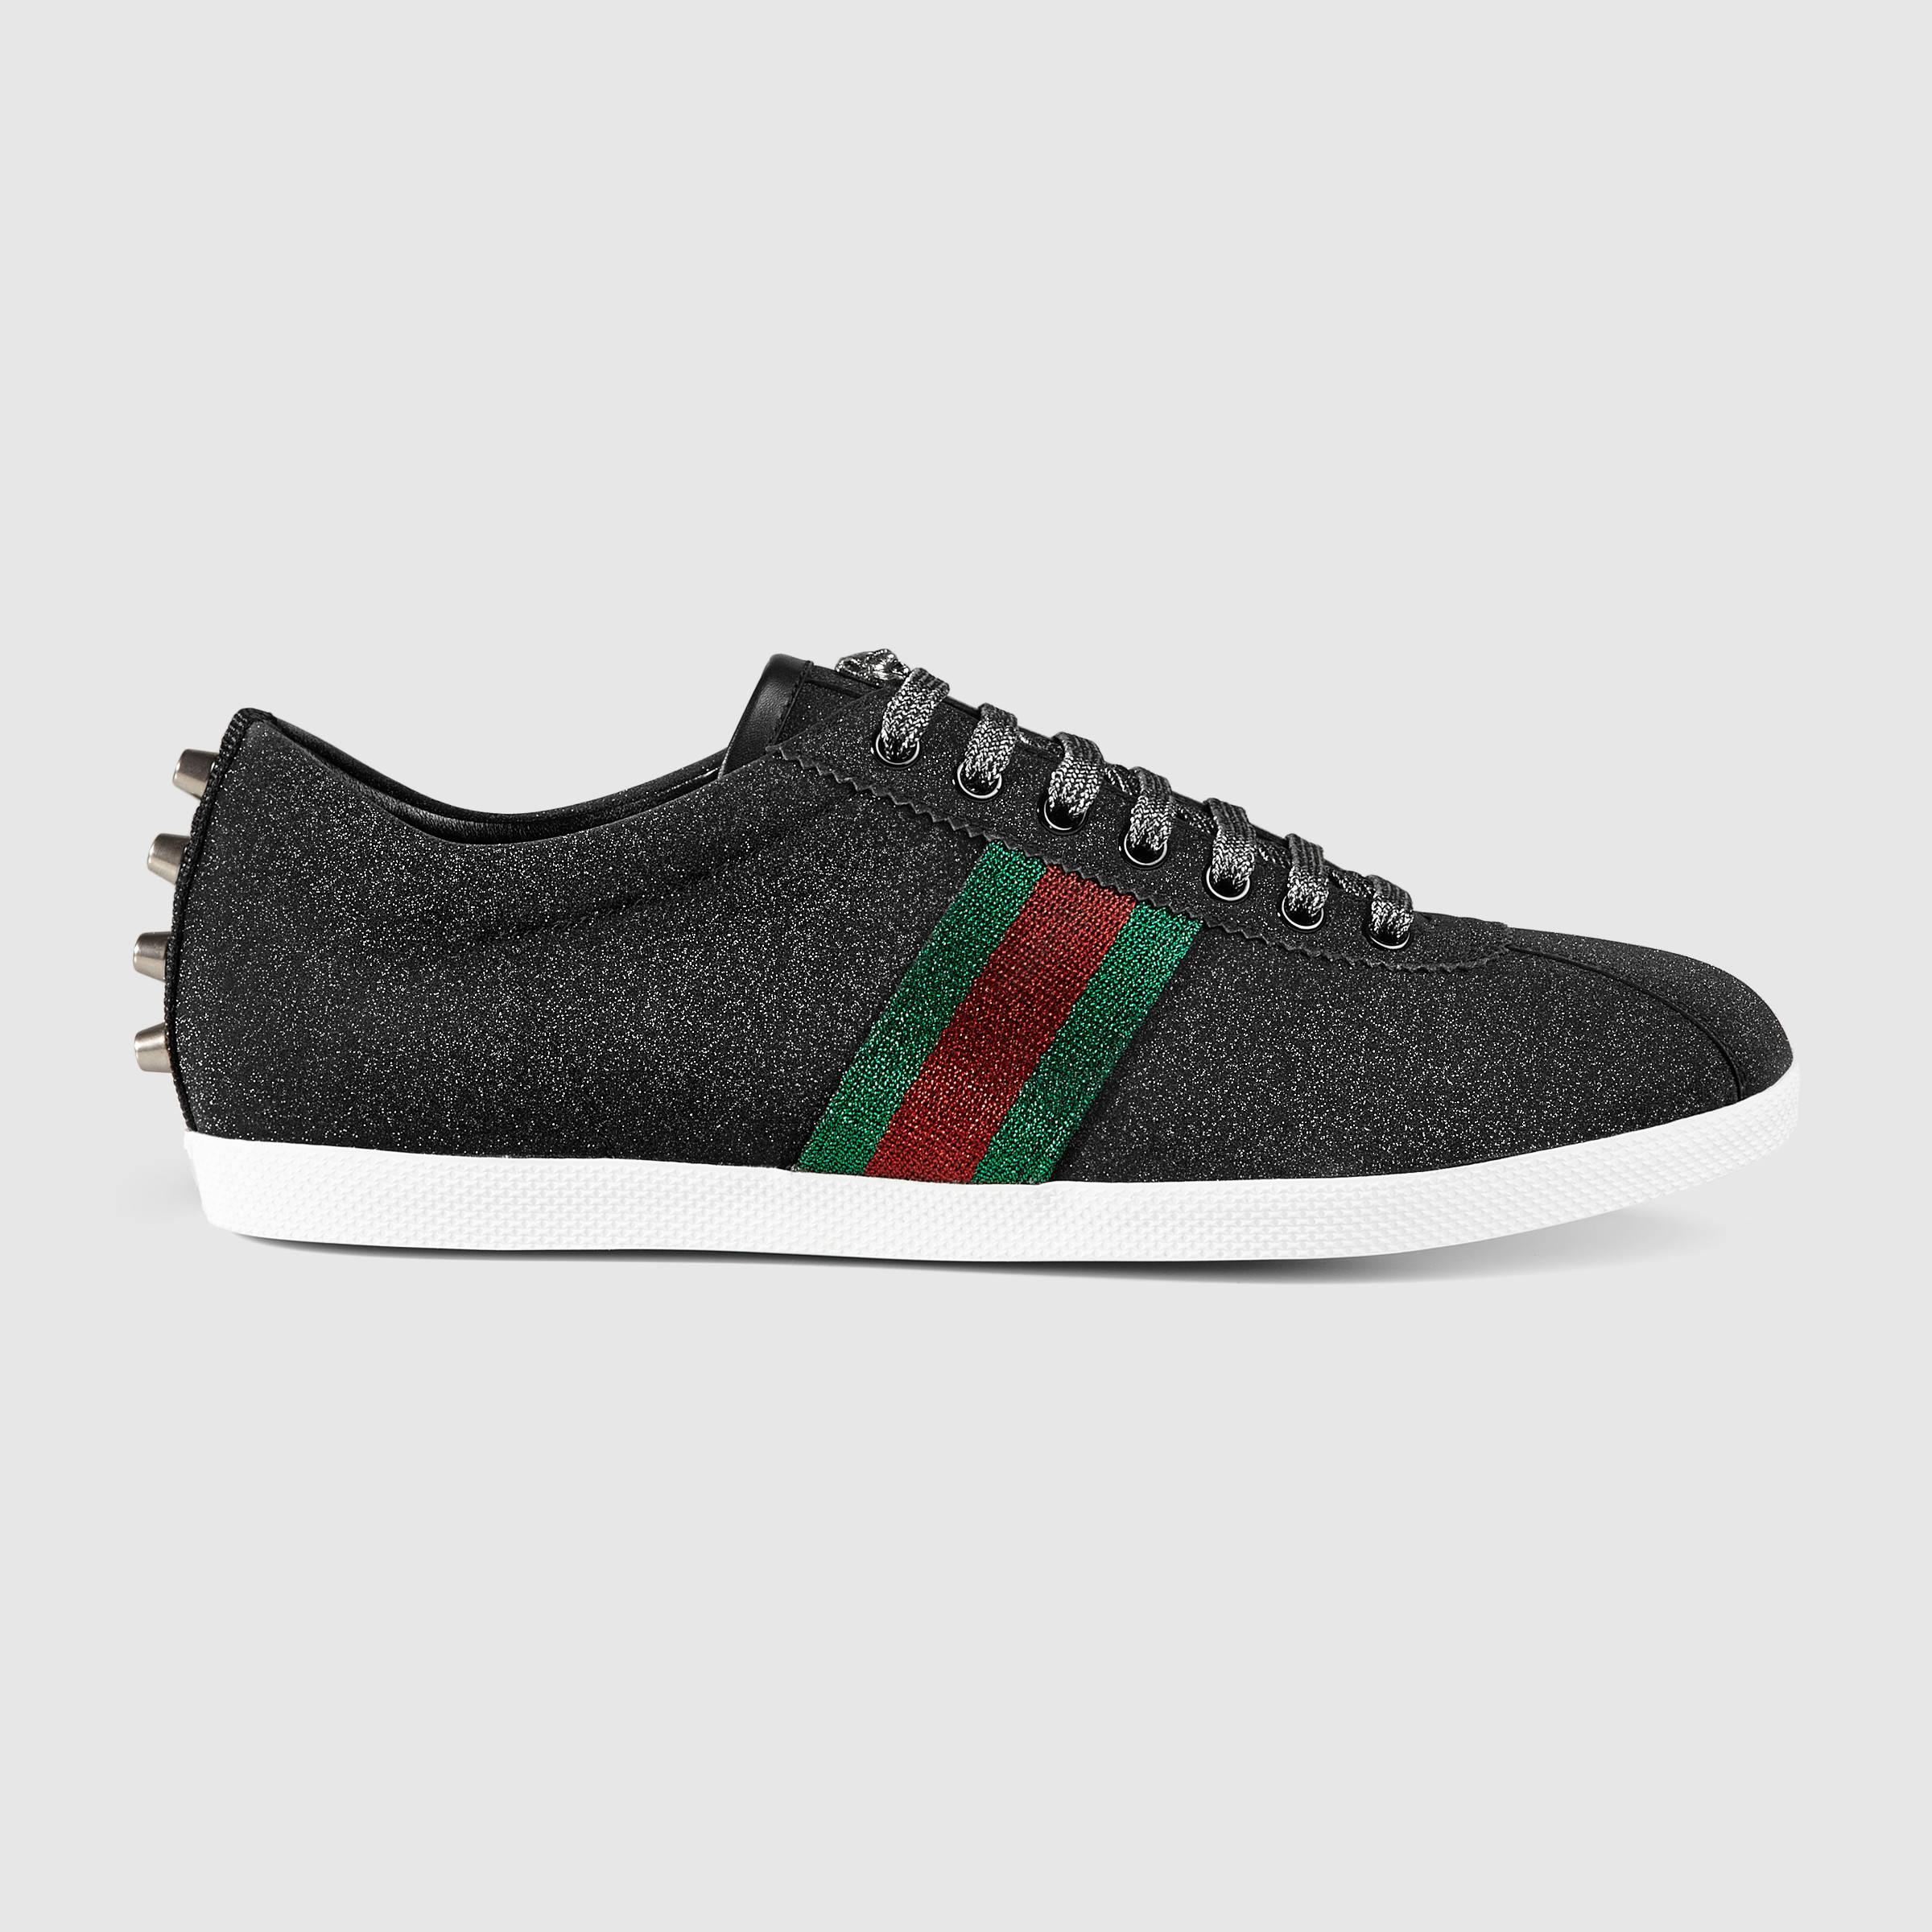 78204a58bd4cb6 Gucci Glitter Web Sneaker in Black for Men - Lyst